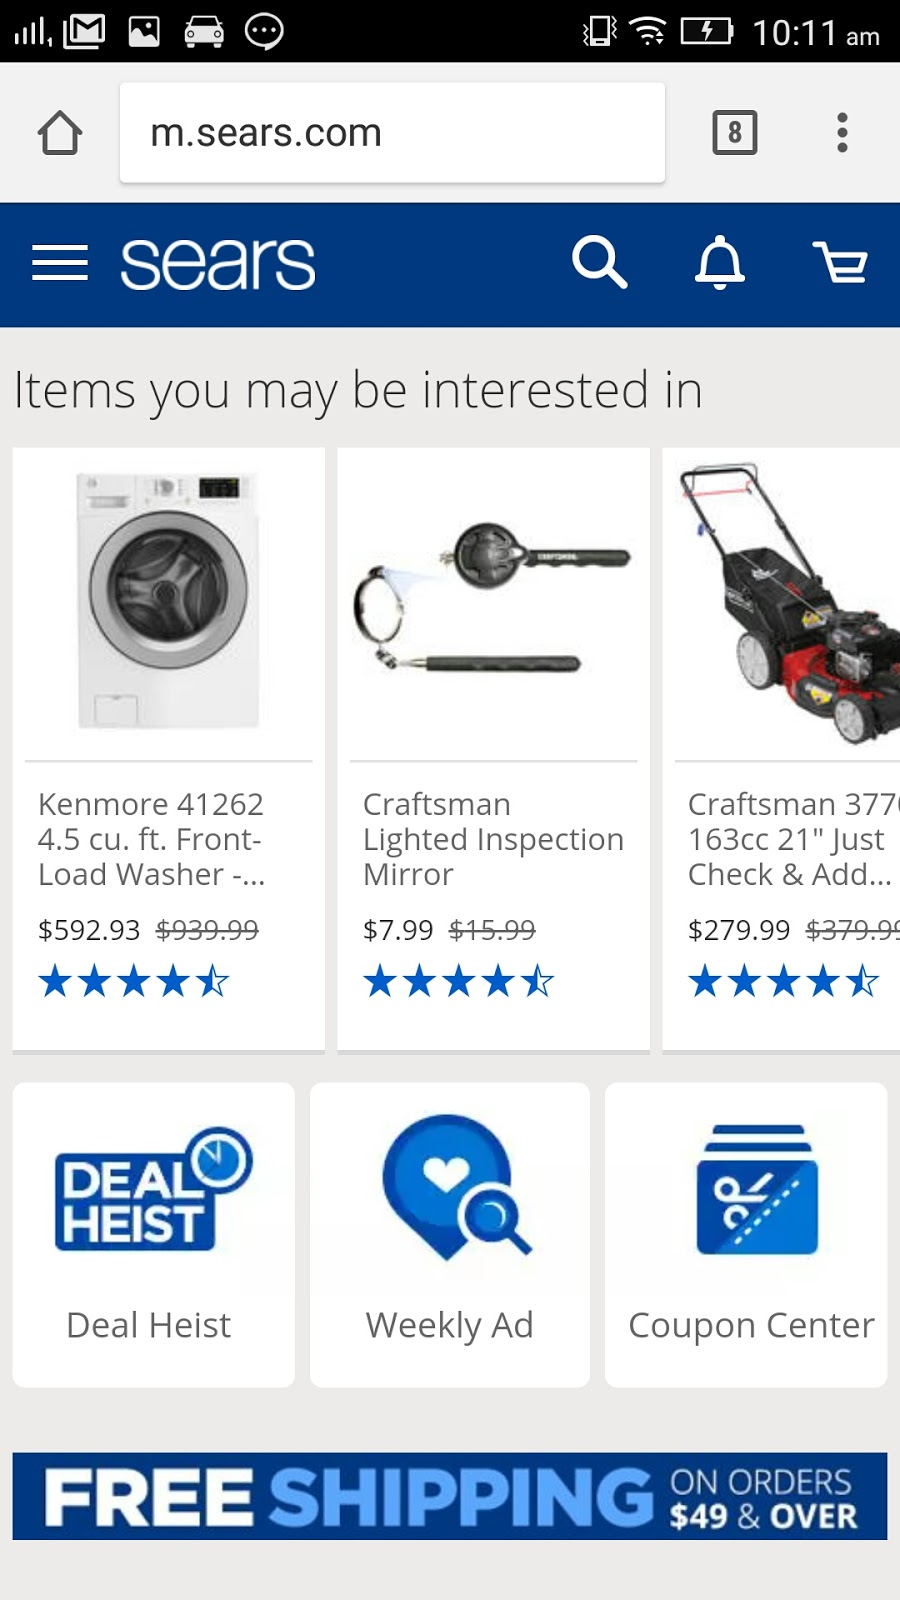 Sears Mobile friendly products